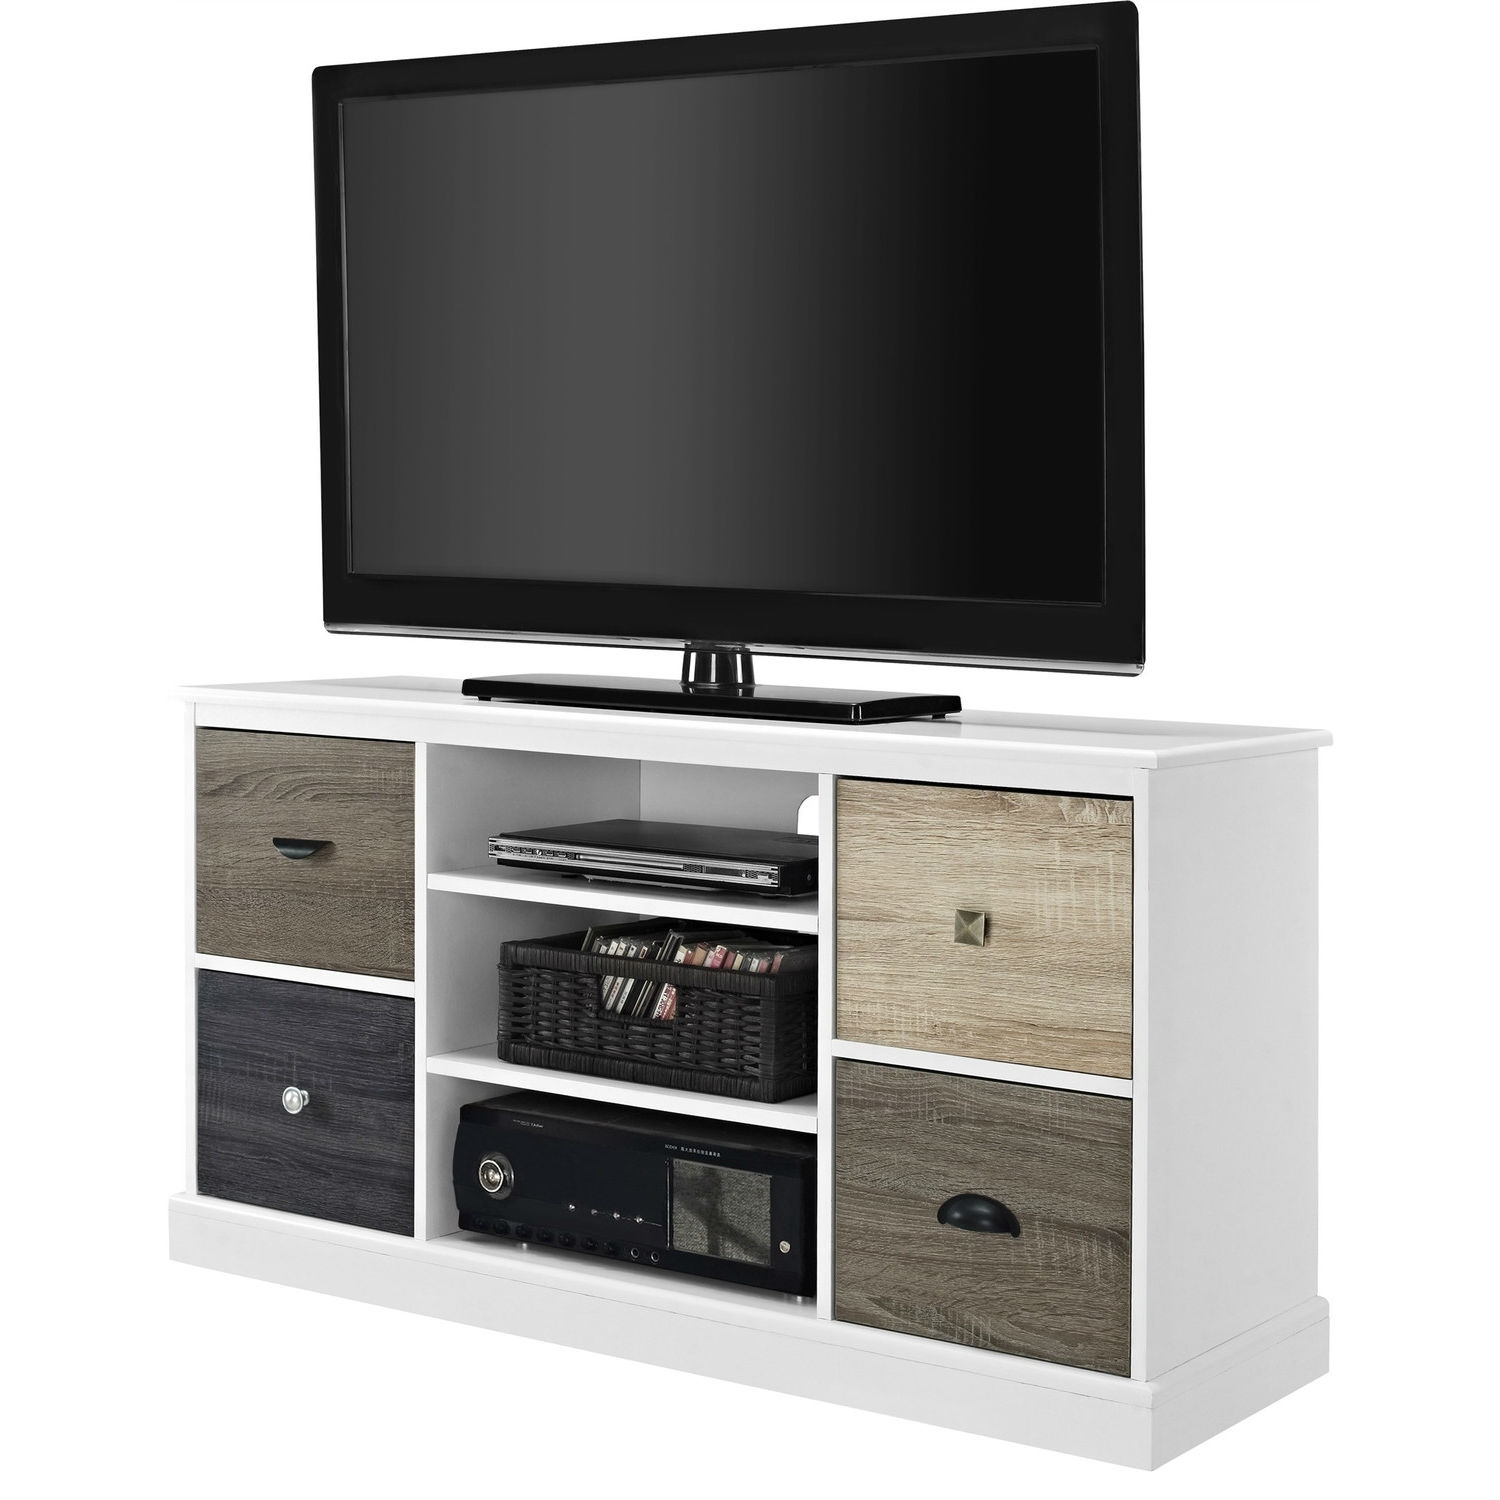 designer bdi stand ola cabinet home front tv white product and copy stands for cabinets